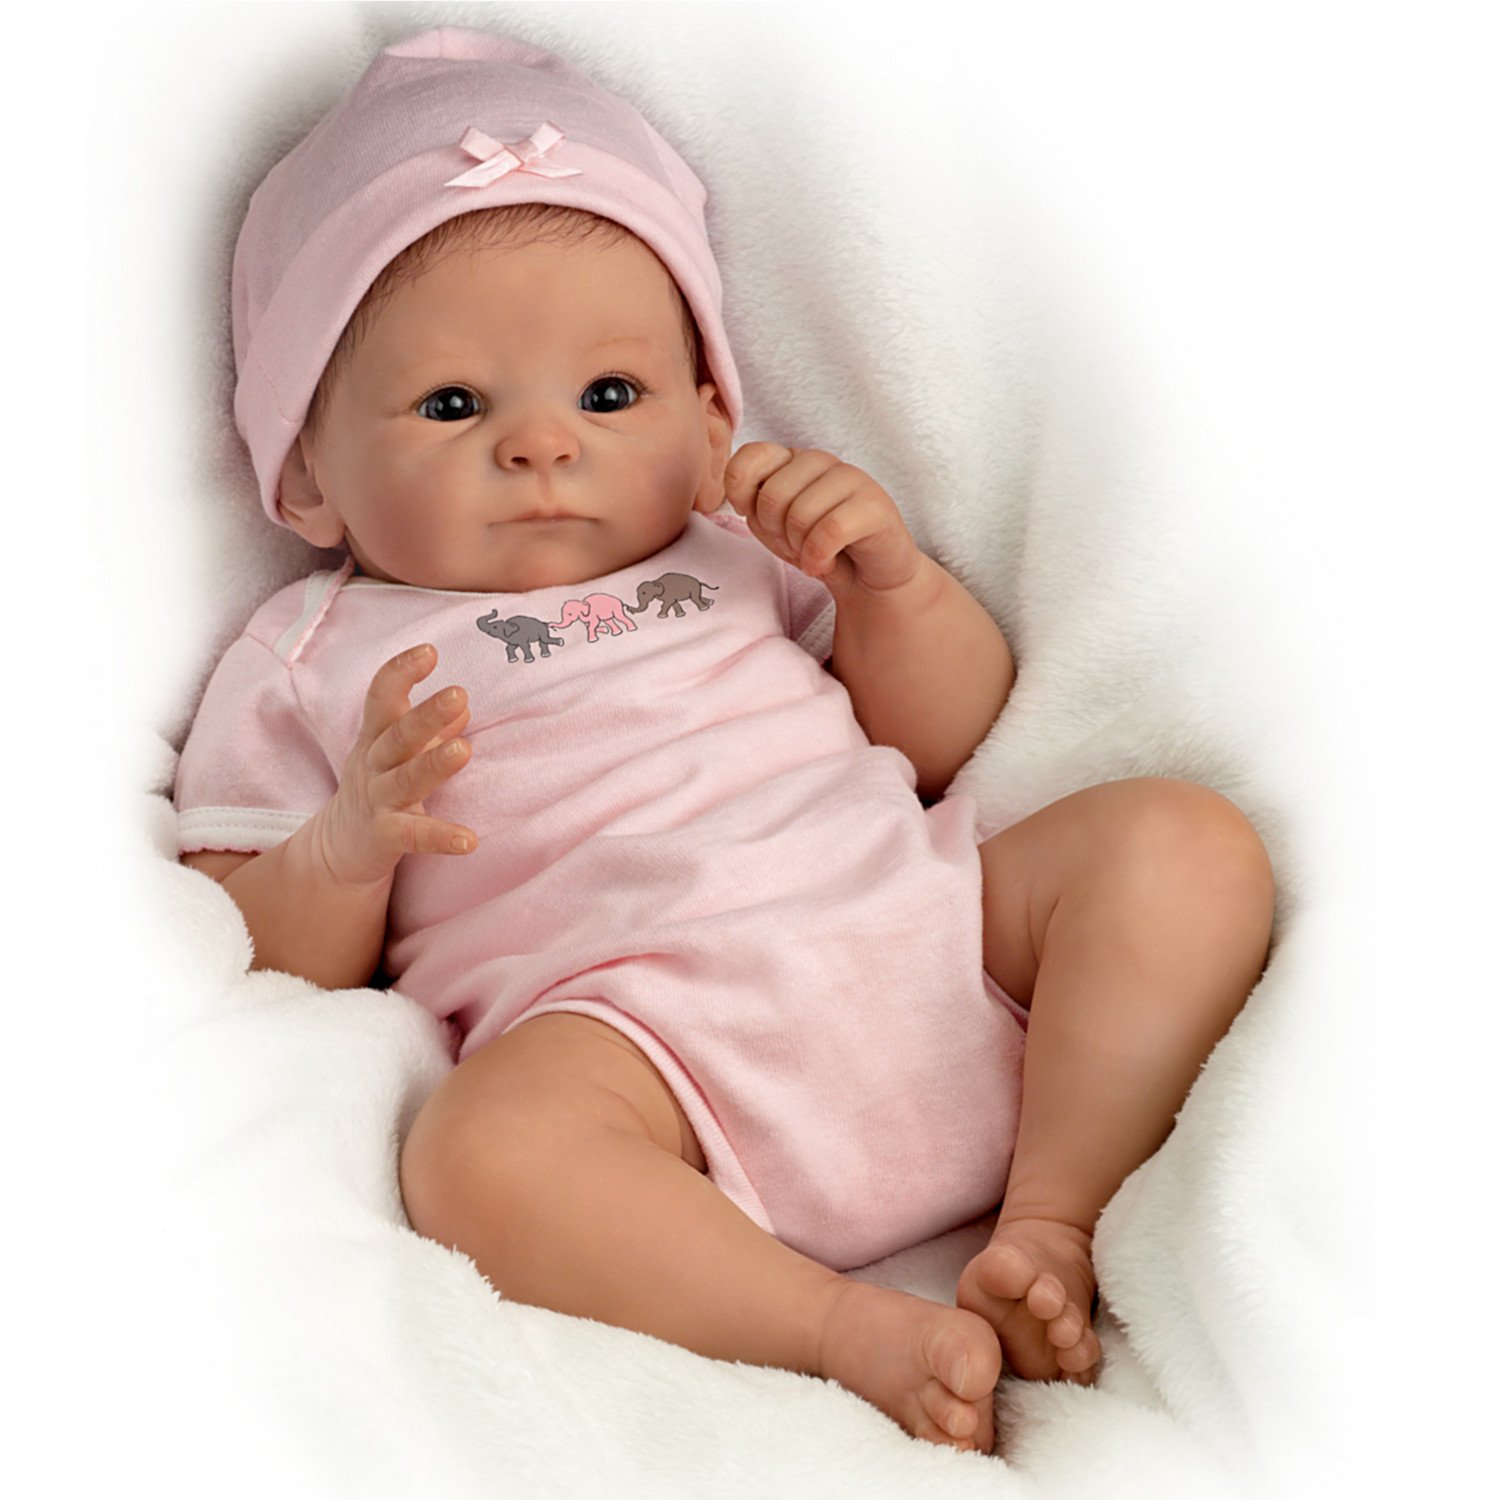 Tasha Edenholm Lifelike Poseable Little Peanut Baby Doll by The Bradford Exchange